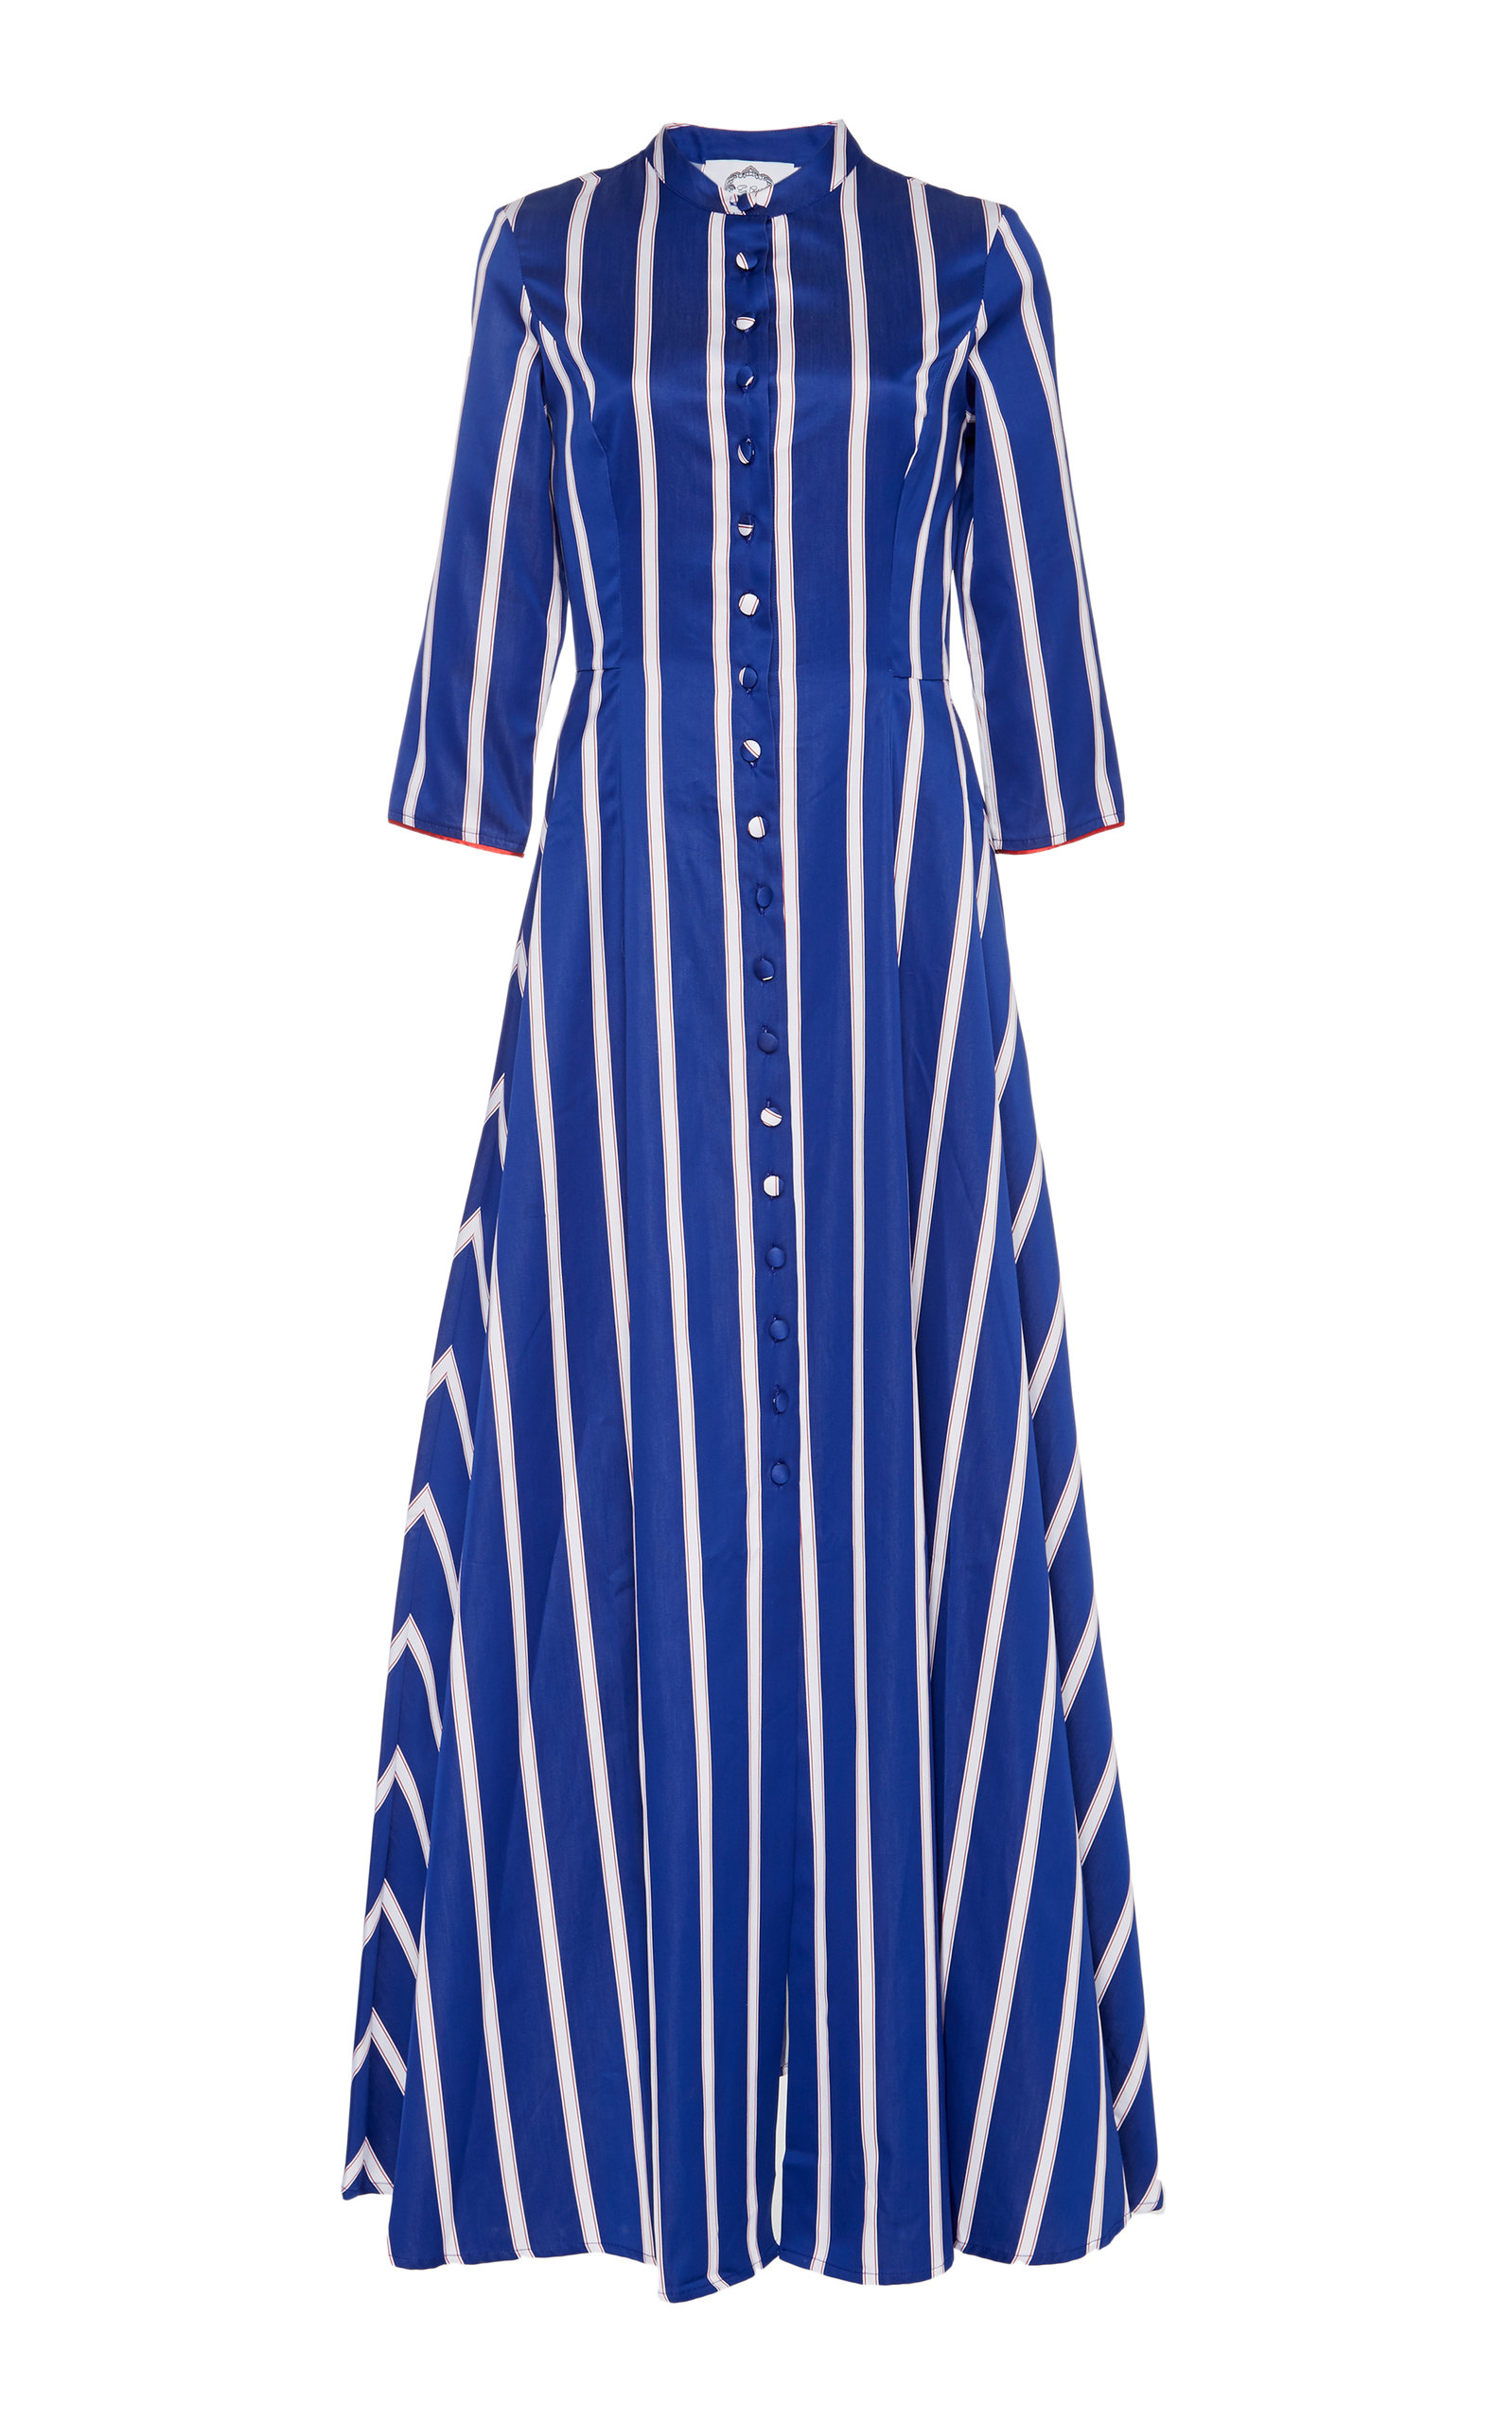 5df28be42f Carine Striped Cotton Maxi Shirt Dress by Evi Grintela